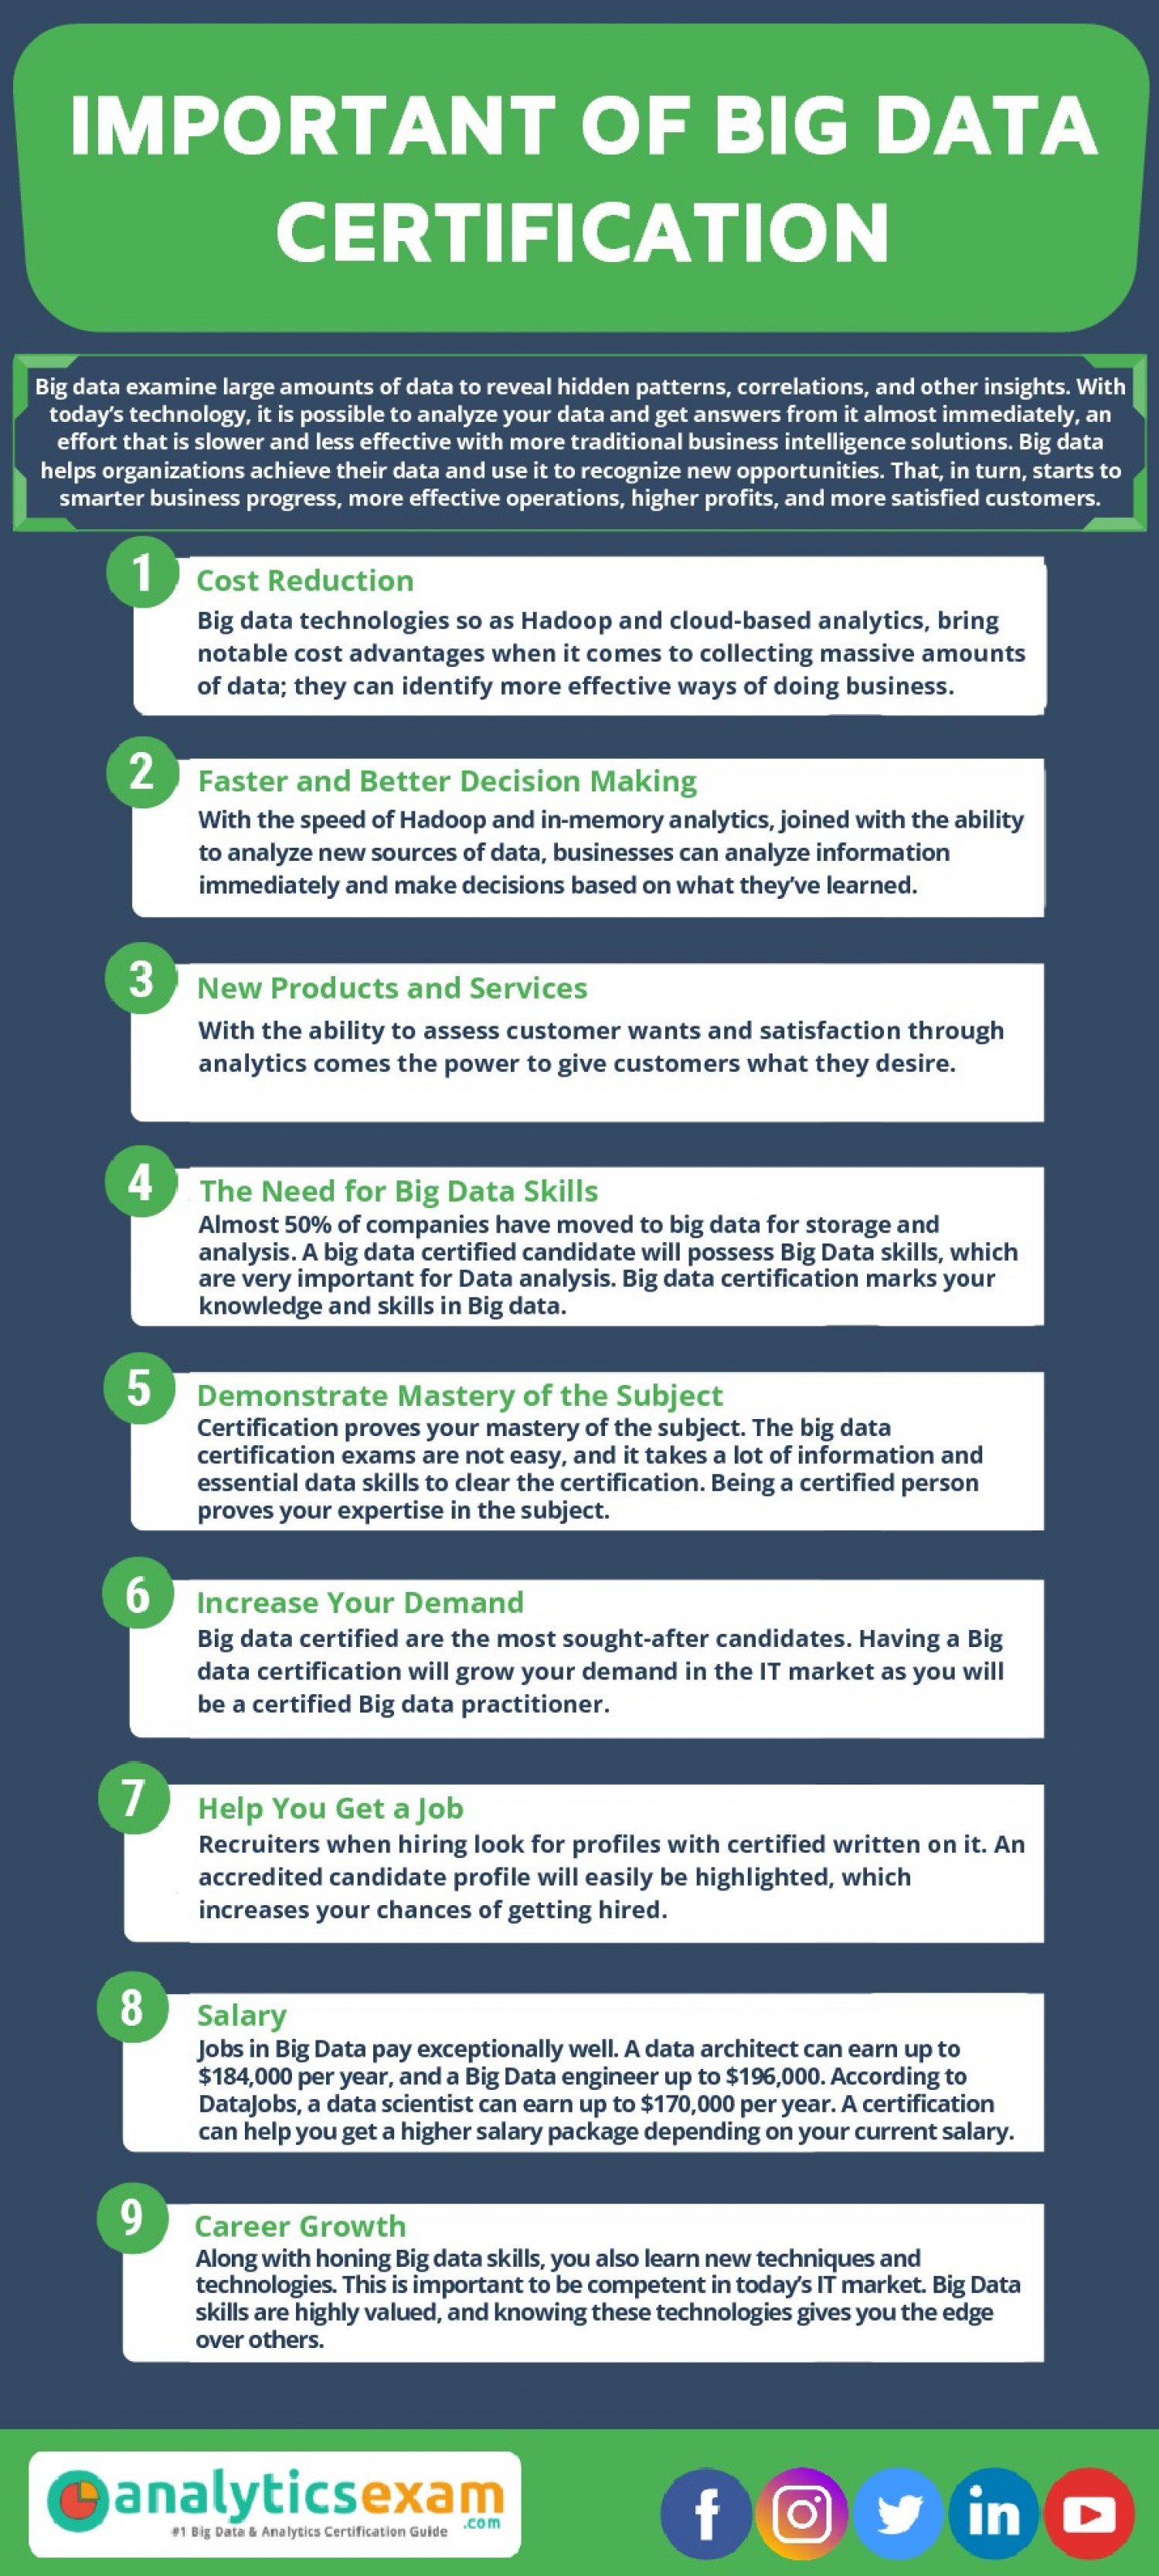 9 IMPORTANT OF BIG DATA CERTIFICATION Infographic